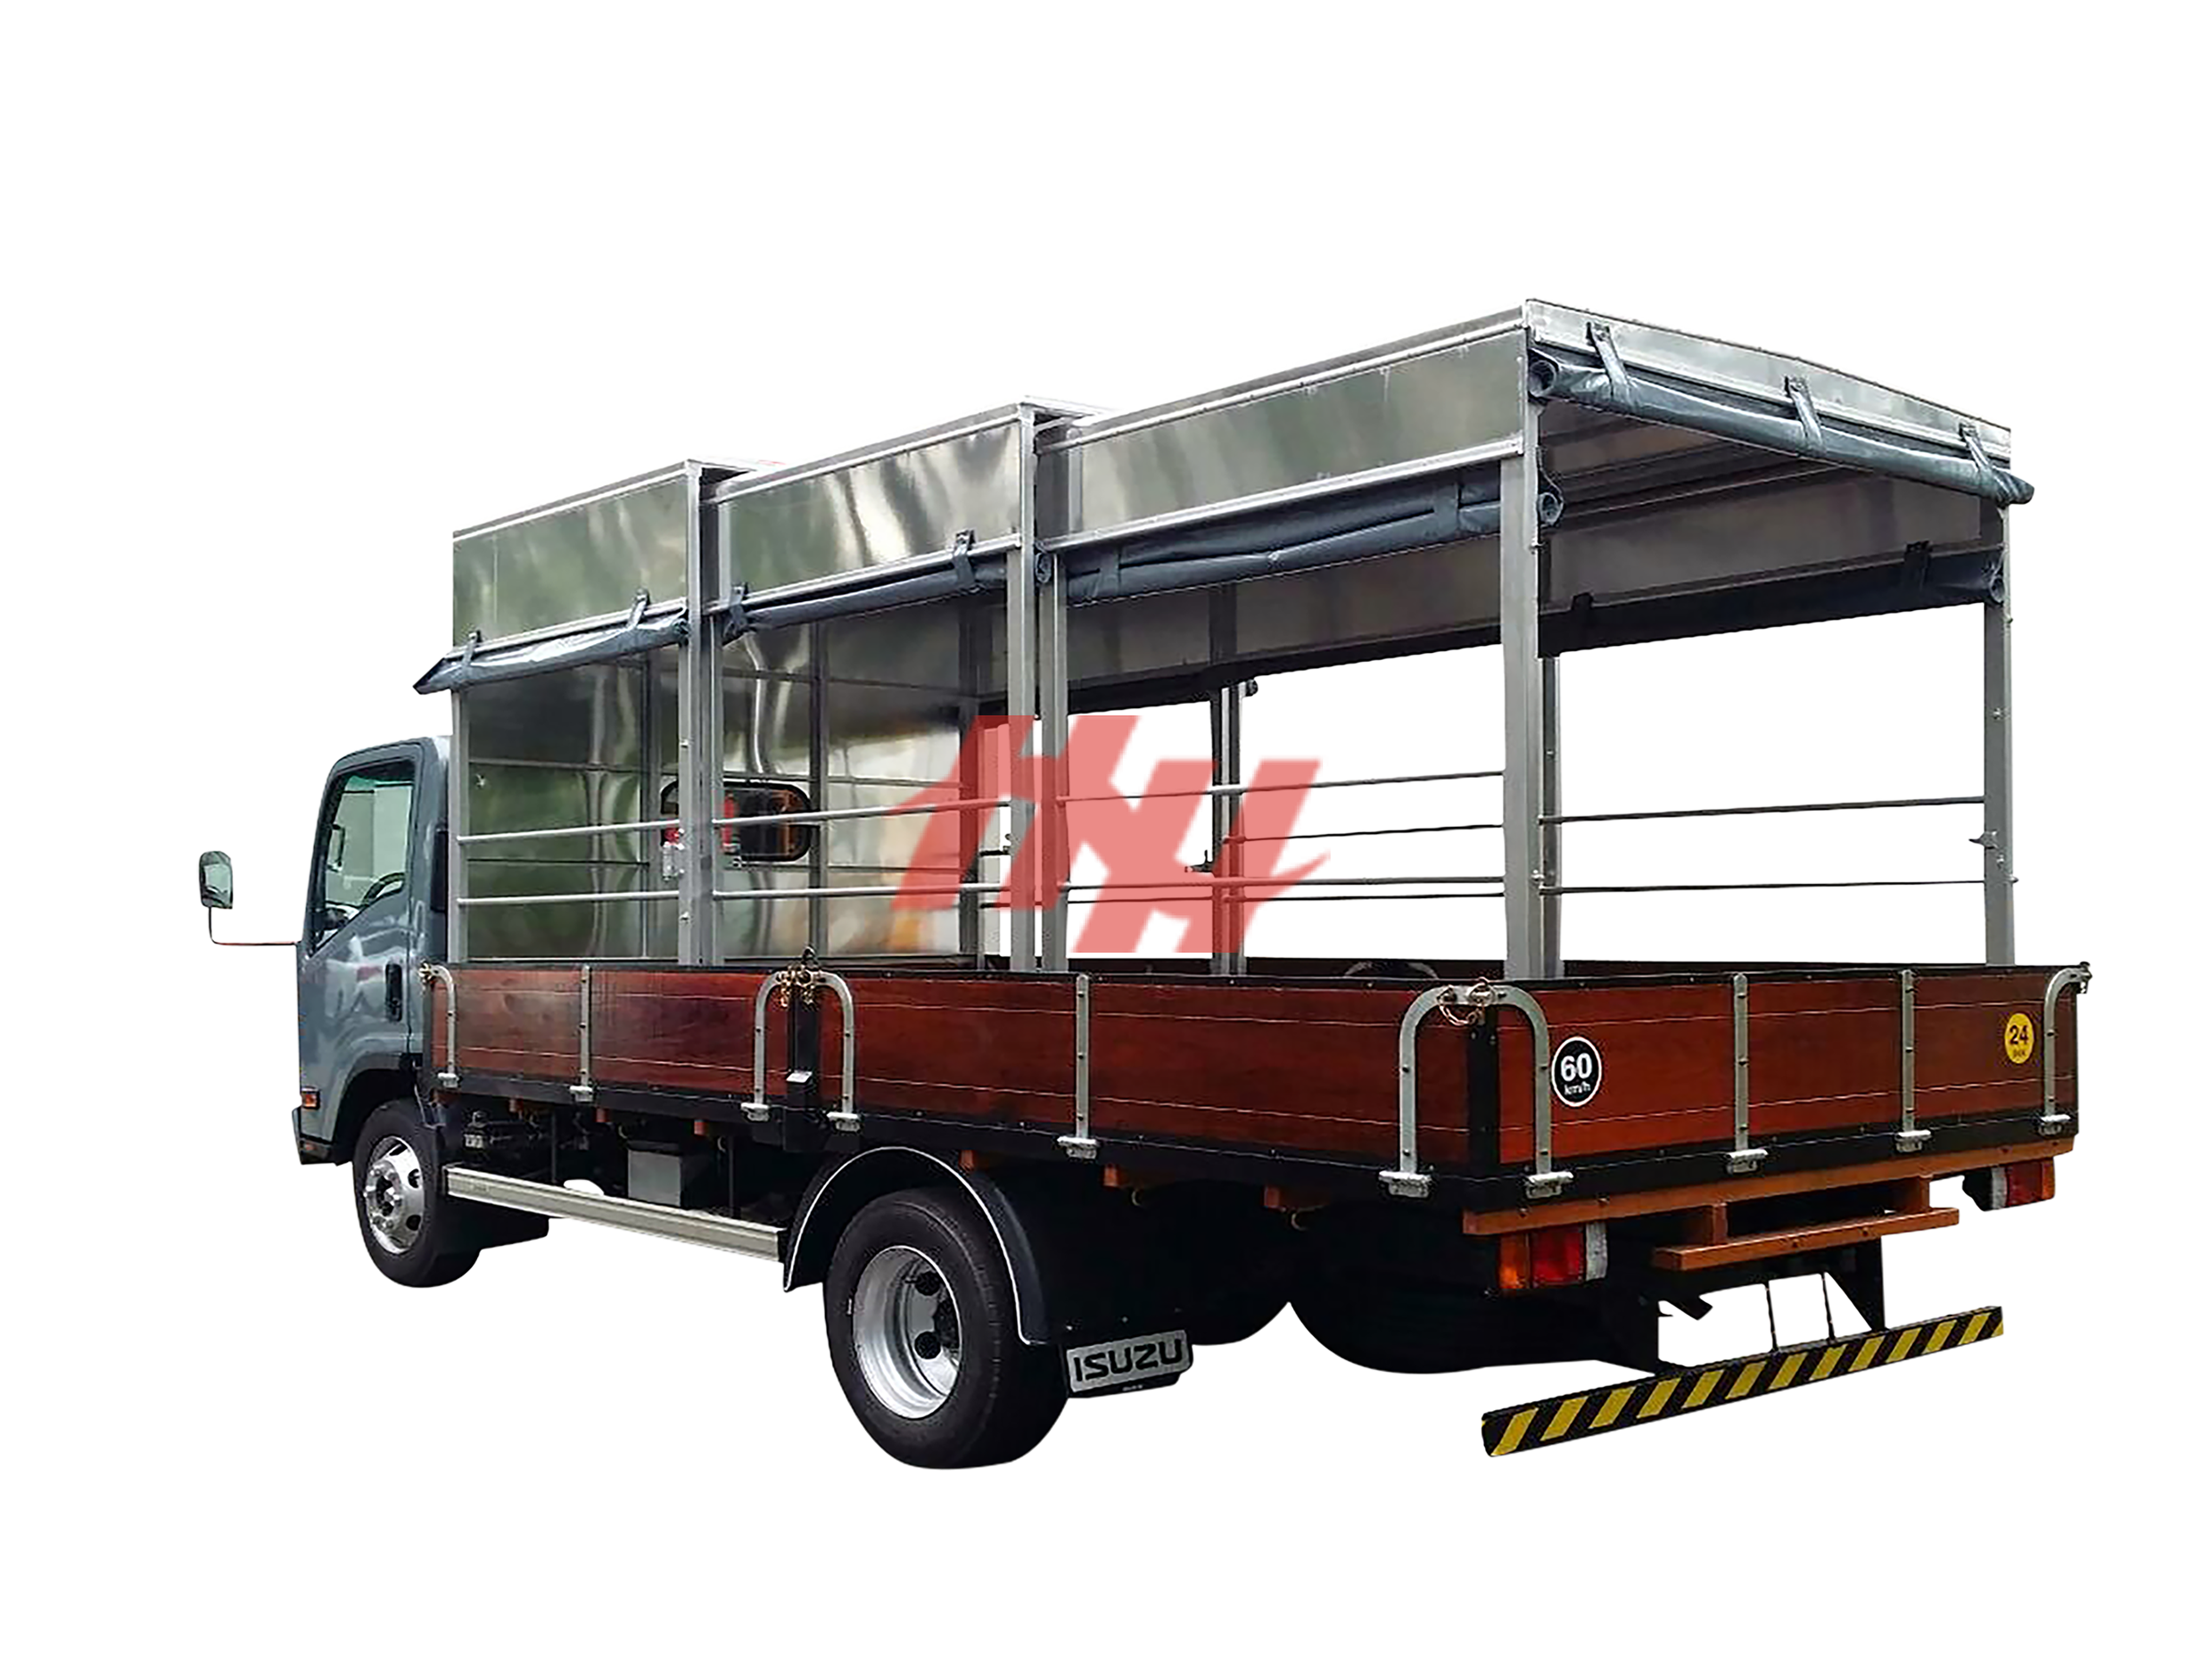 High roof full length triple retractable canopy on wooden body with roll down side canvas  side guard  galvanished hinges and rear bumper